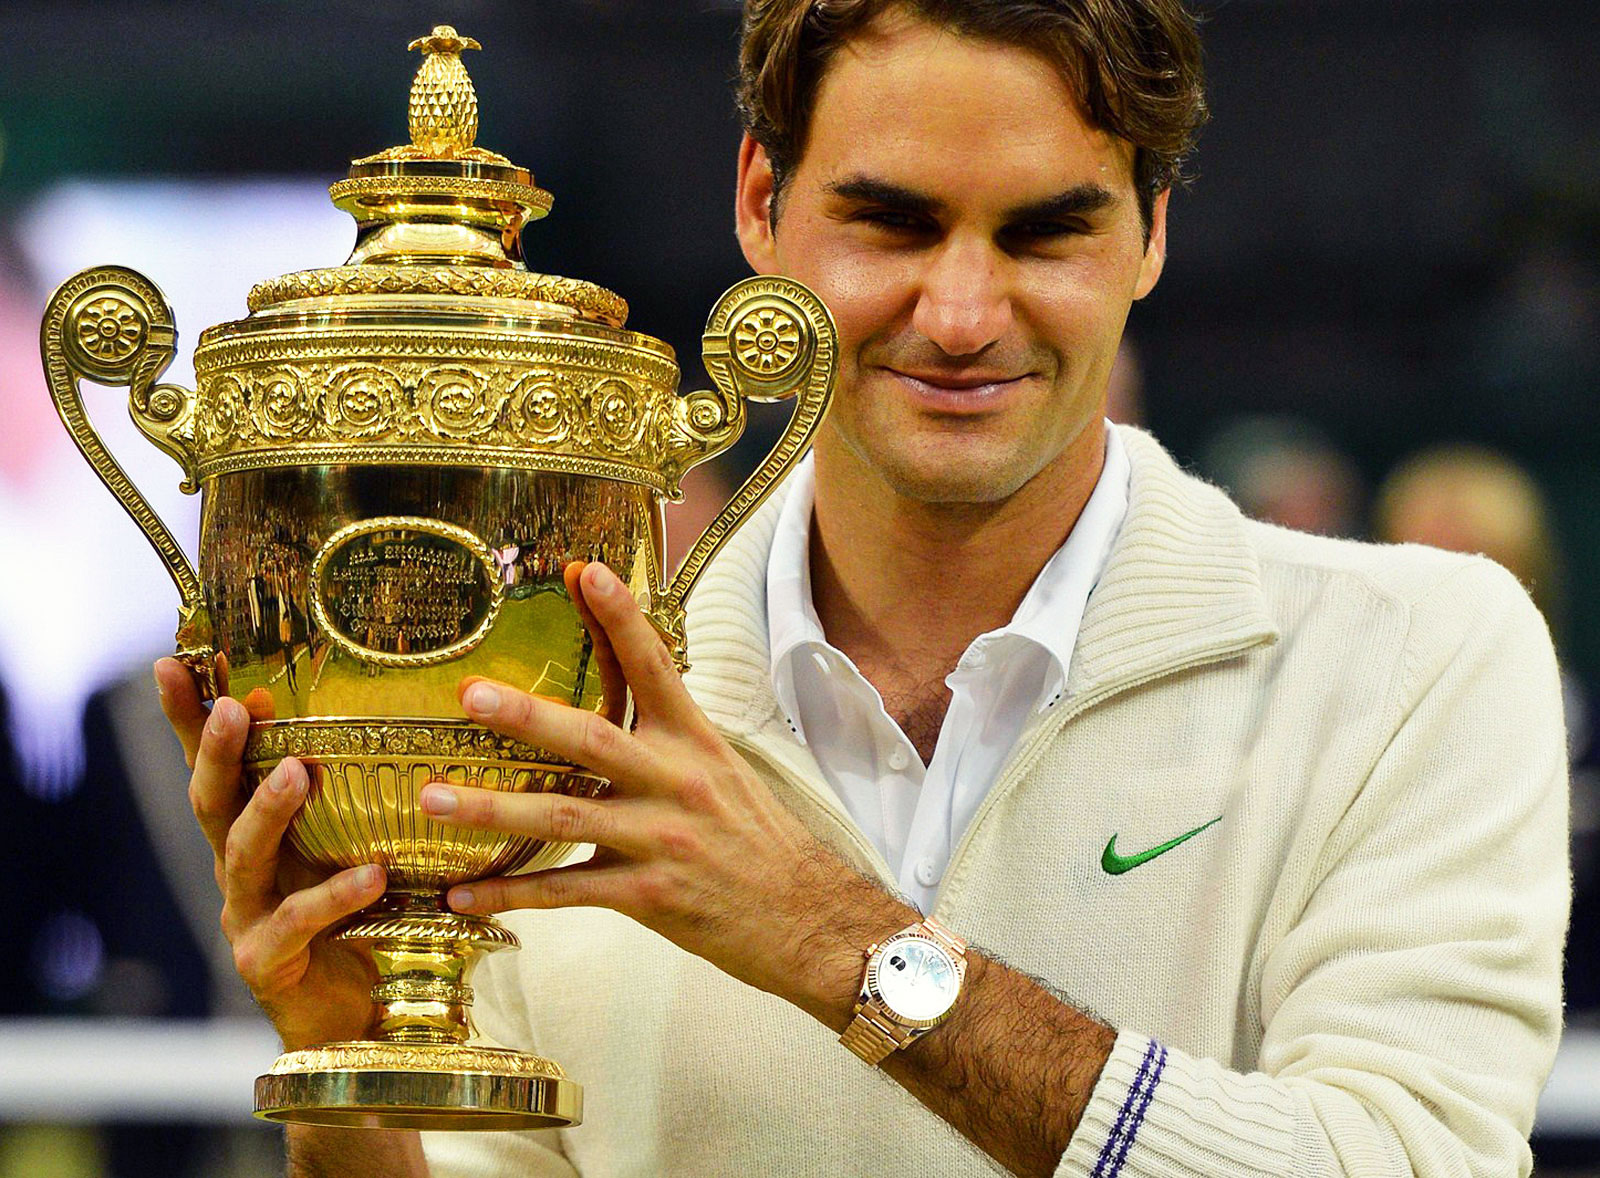 Roger Federer♥ - Roger Federer Photo (31421708) - Fanpop fanclubs